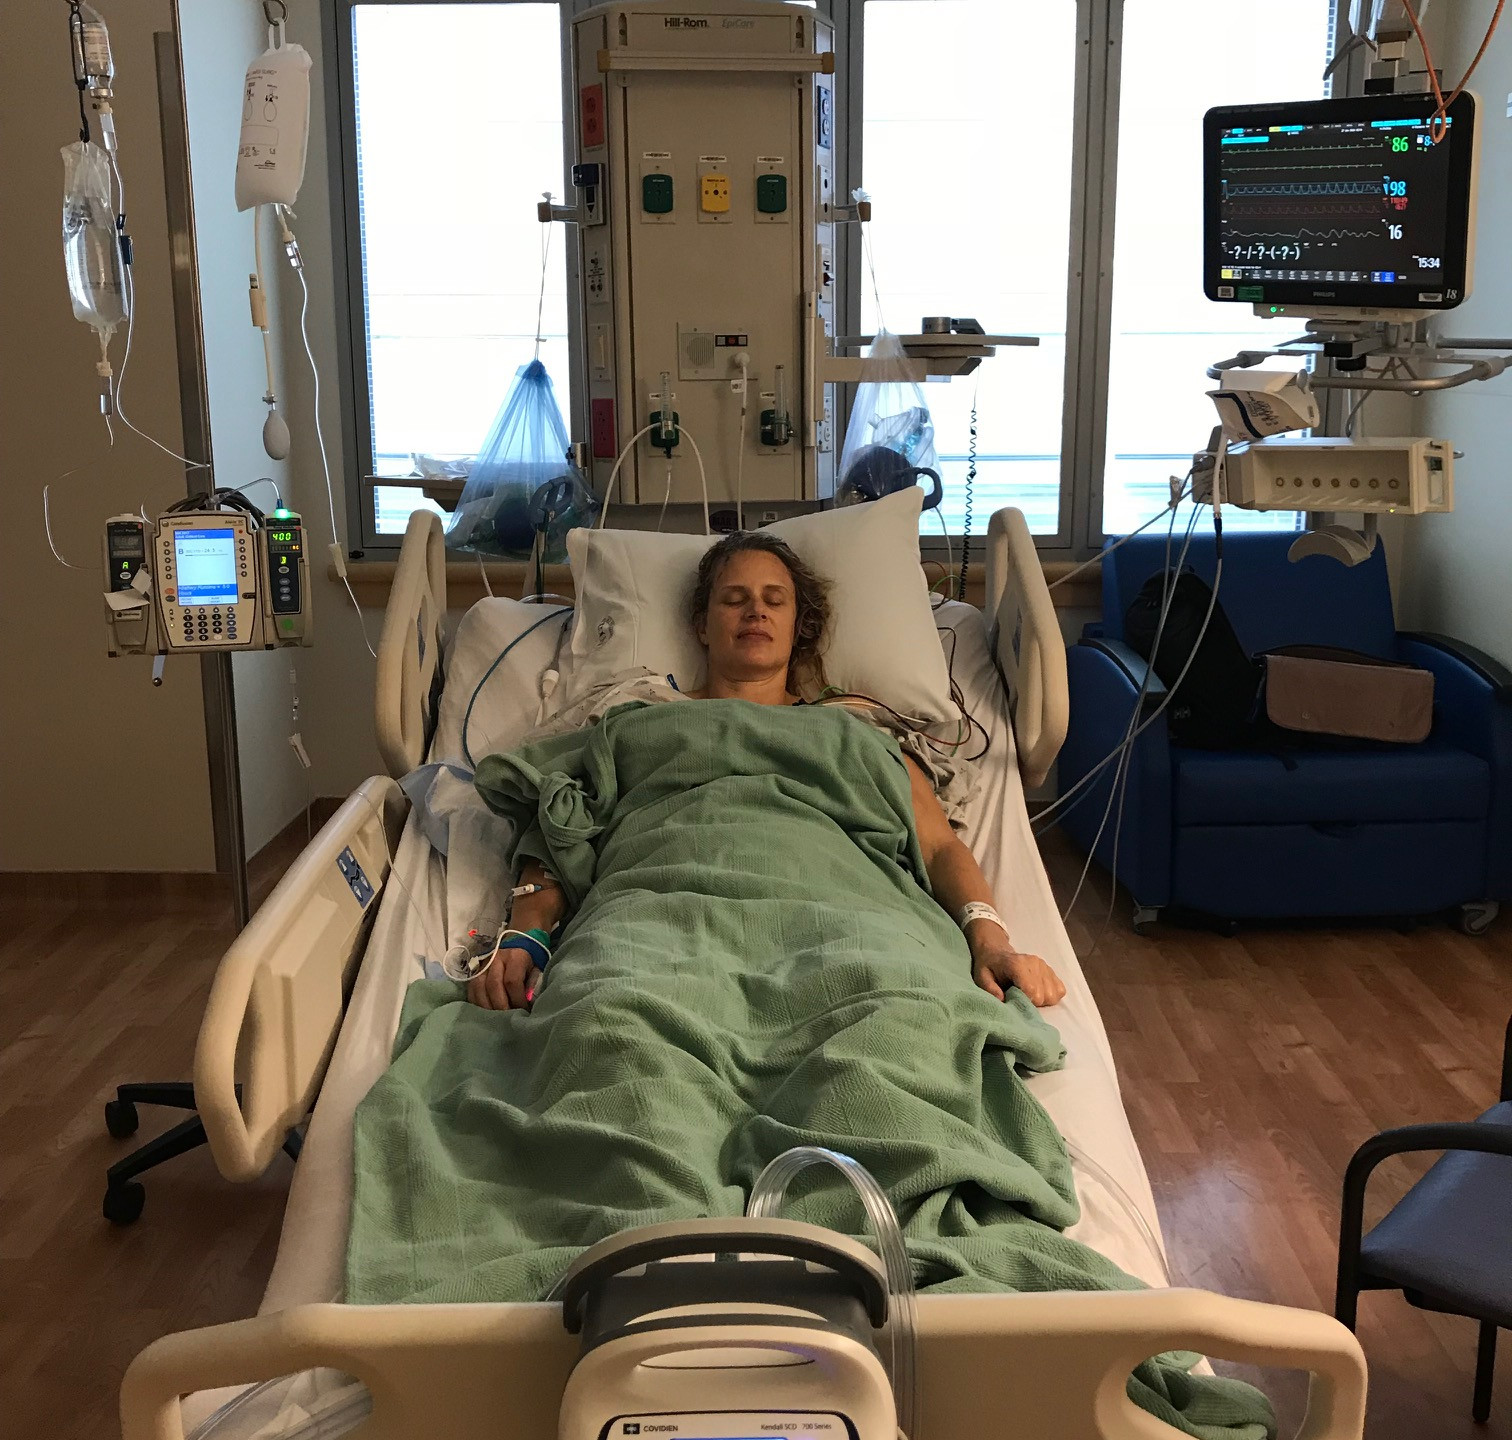 Arriving in the ICU